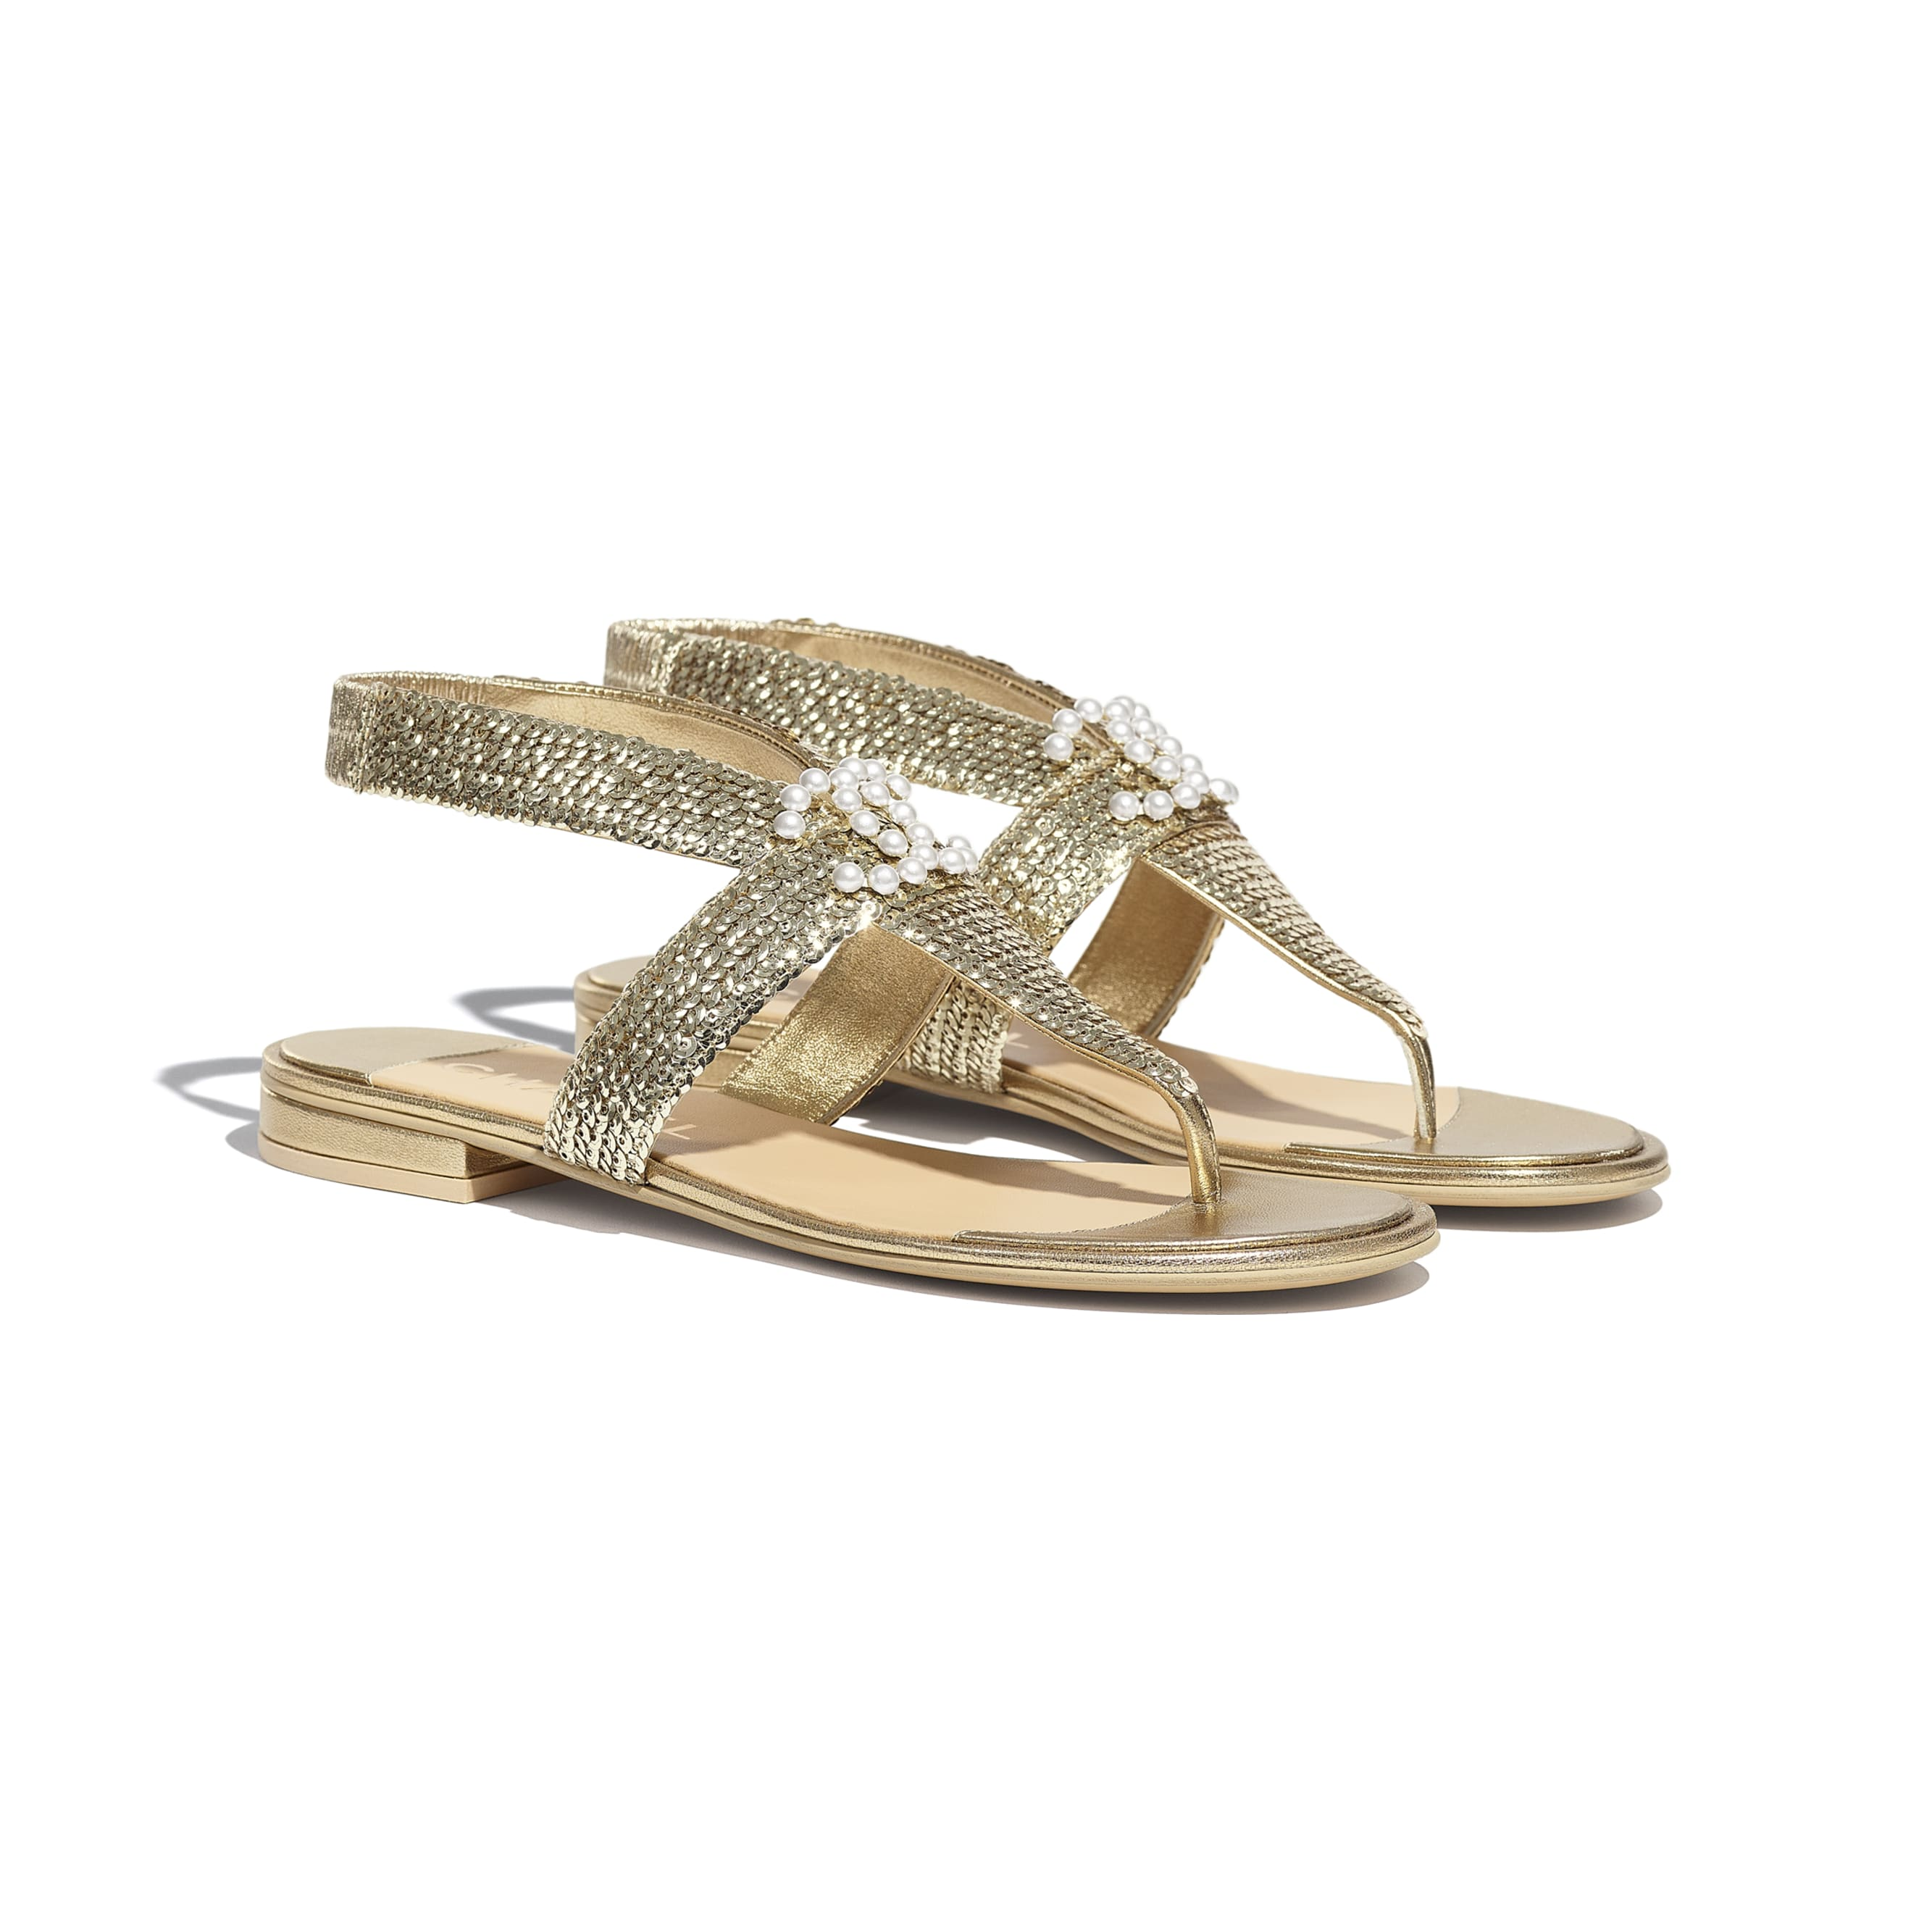 Sandals - Gold - Laminated Lambskin & Sequins - CHANEL - Alternative view - see standard sized version